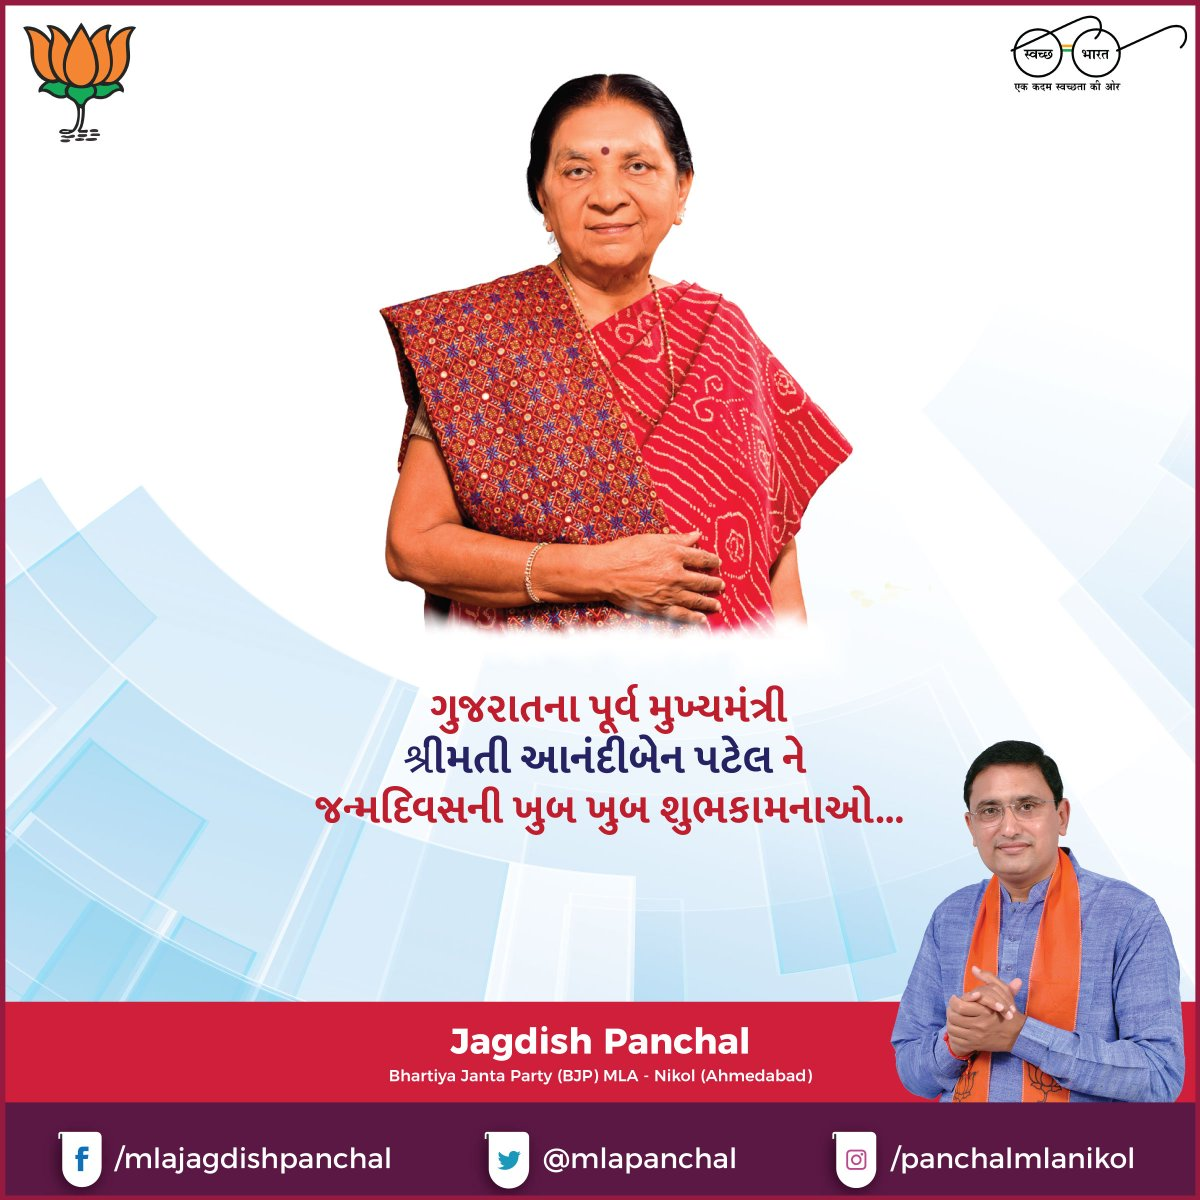 Very Warm Birthday Wishes To Former Chief Minister Shrimati @anandibenpatel . May God bless her long and healthy life.  #birthday_wishes #anandiben_patel  #jagdish_panchal #bjp #mla #nikol #odhav #ahmedbada #gujarat #india<br>http://pic.twitter.com/12tpM75PI5